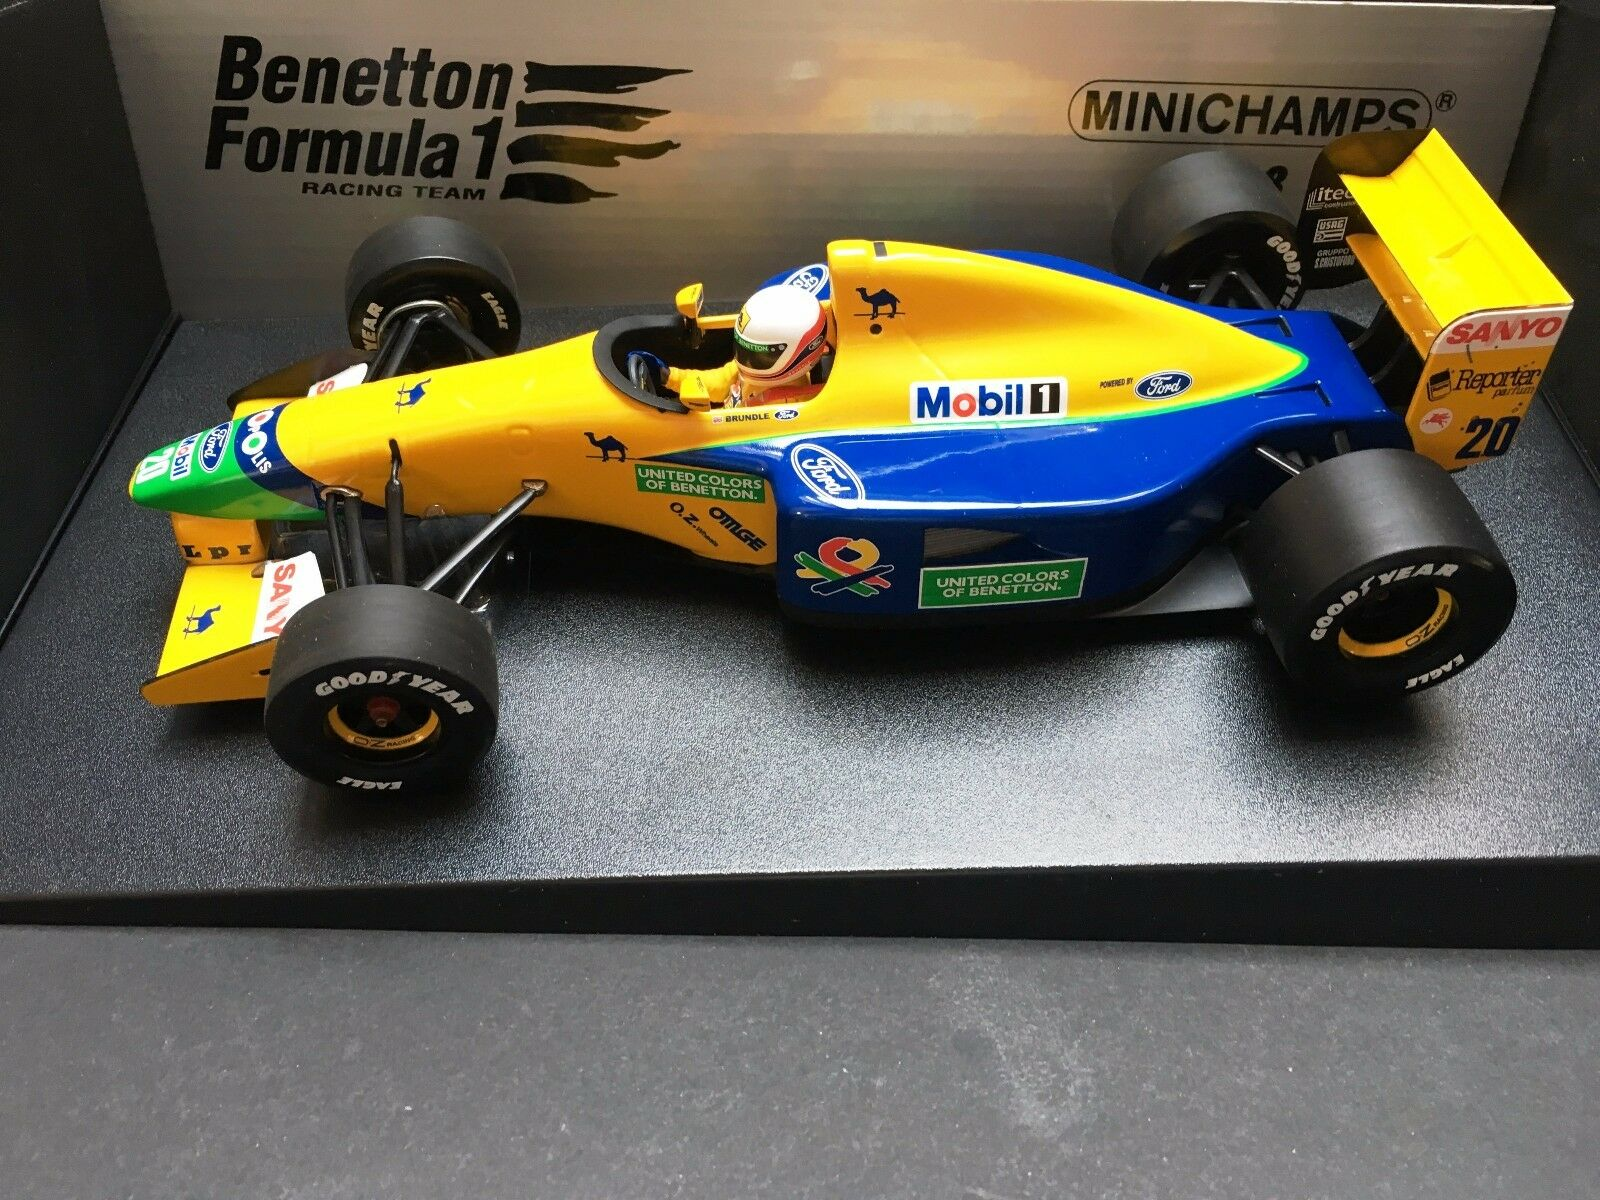 Minichamps - Martin Brundle - Benetton - B191B - 1992 -1 18 - Early Season